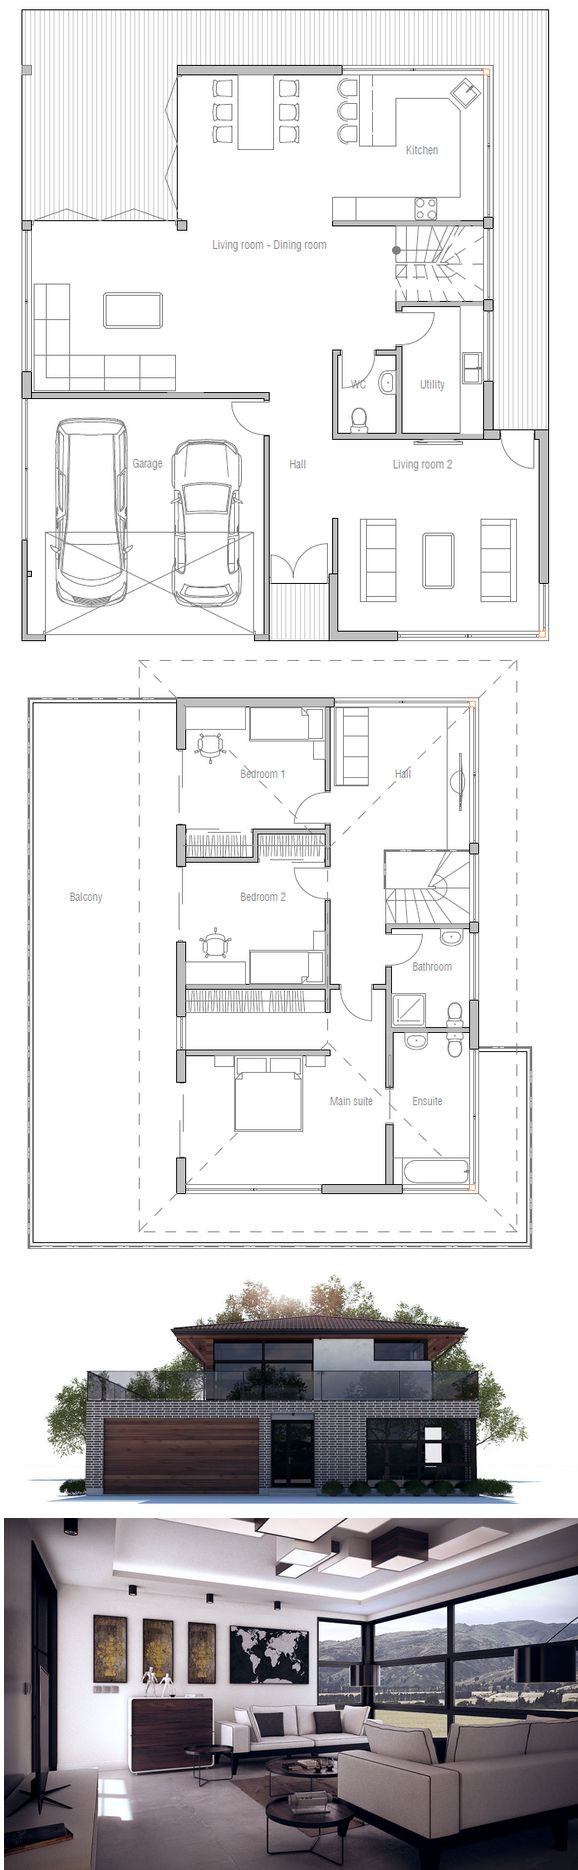 Small Modern House Floor Plan From